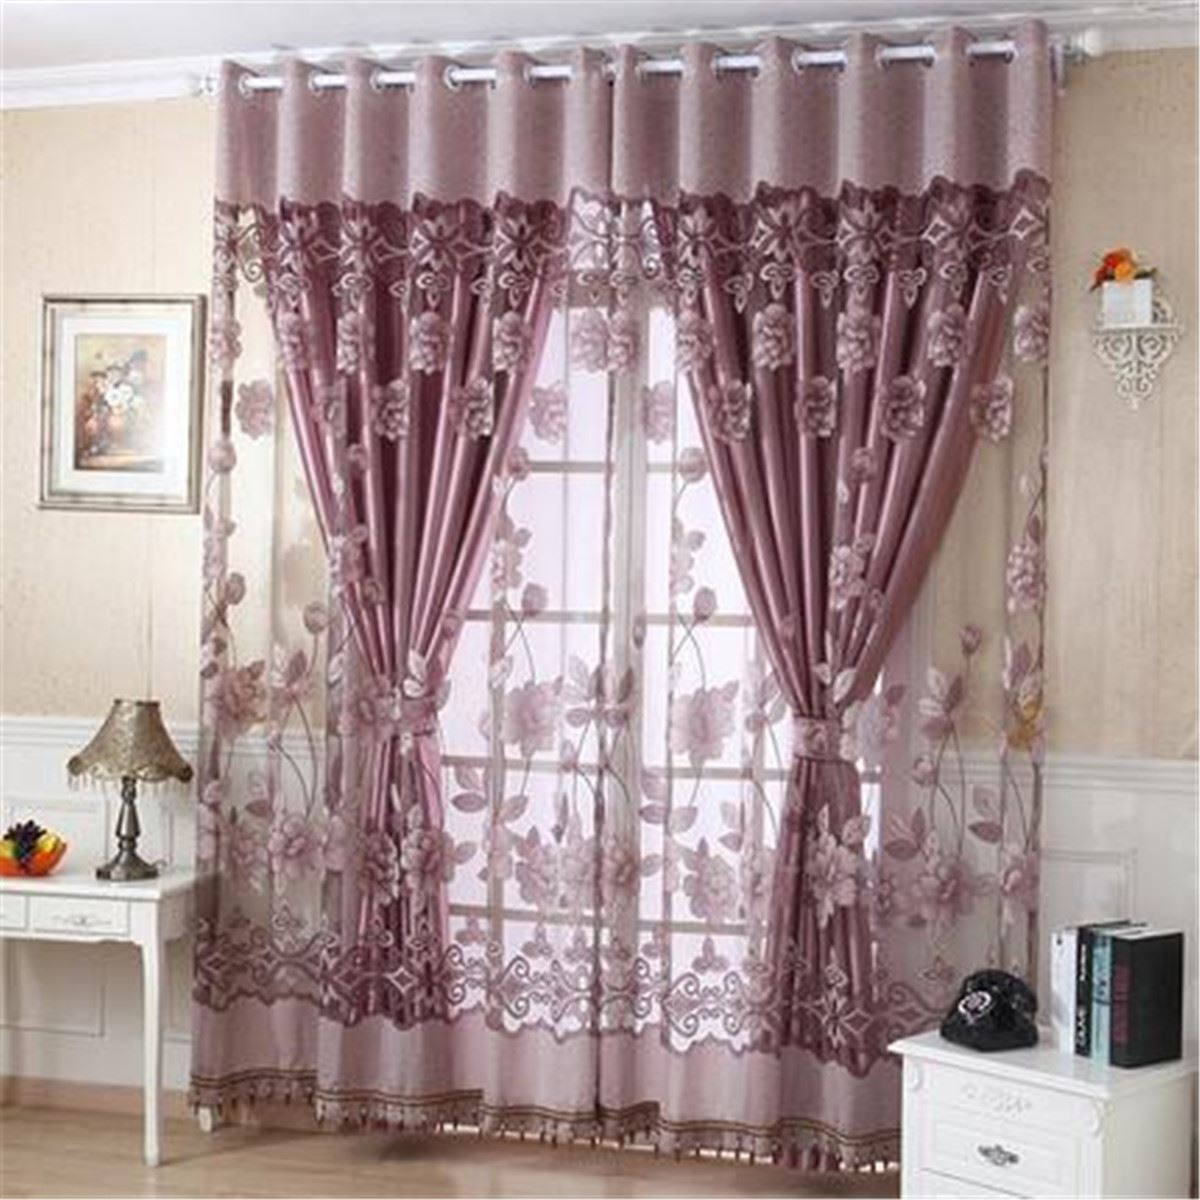 drapes elrene curtains p x curtain in and ivory scarf window w panel valance pocket l rod